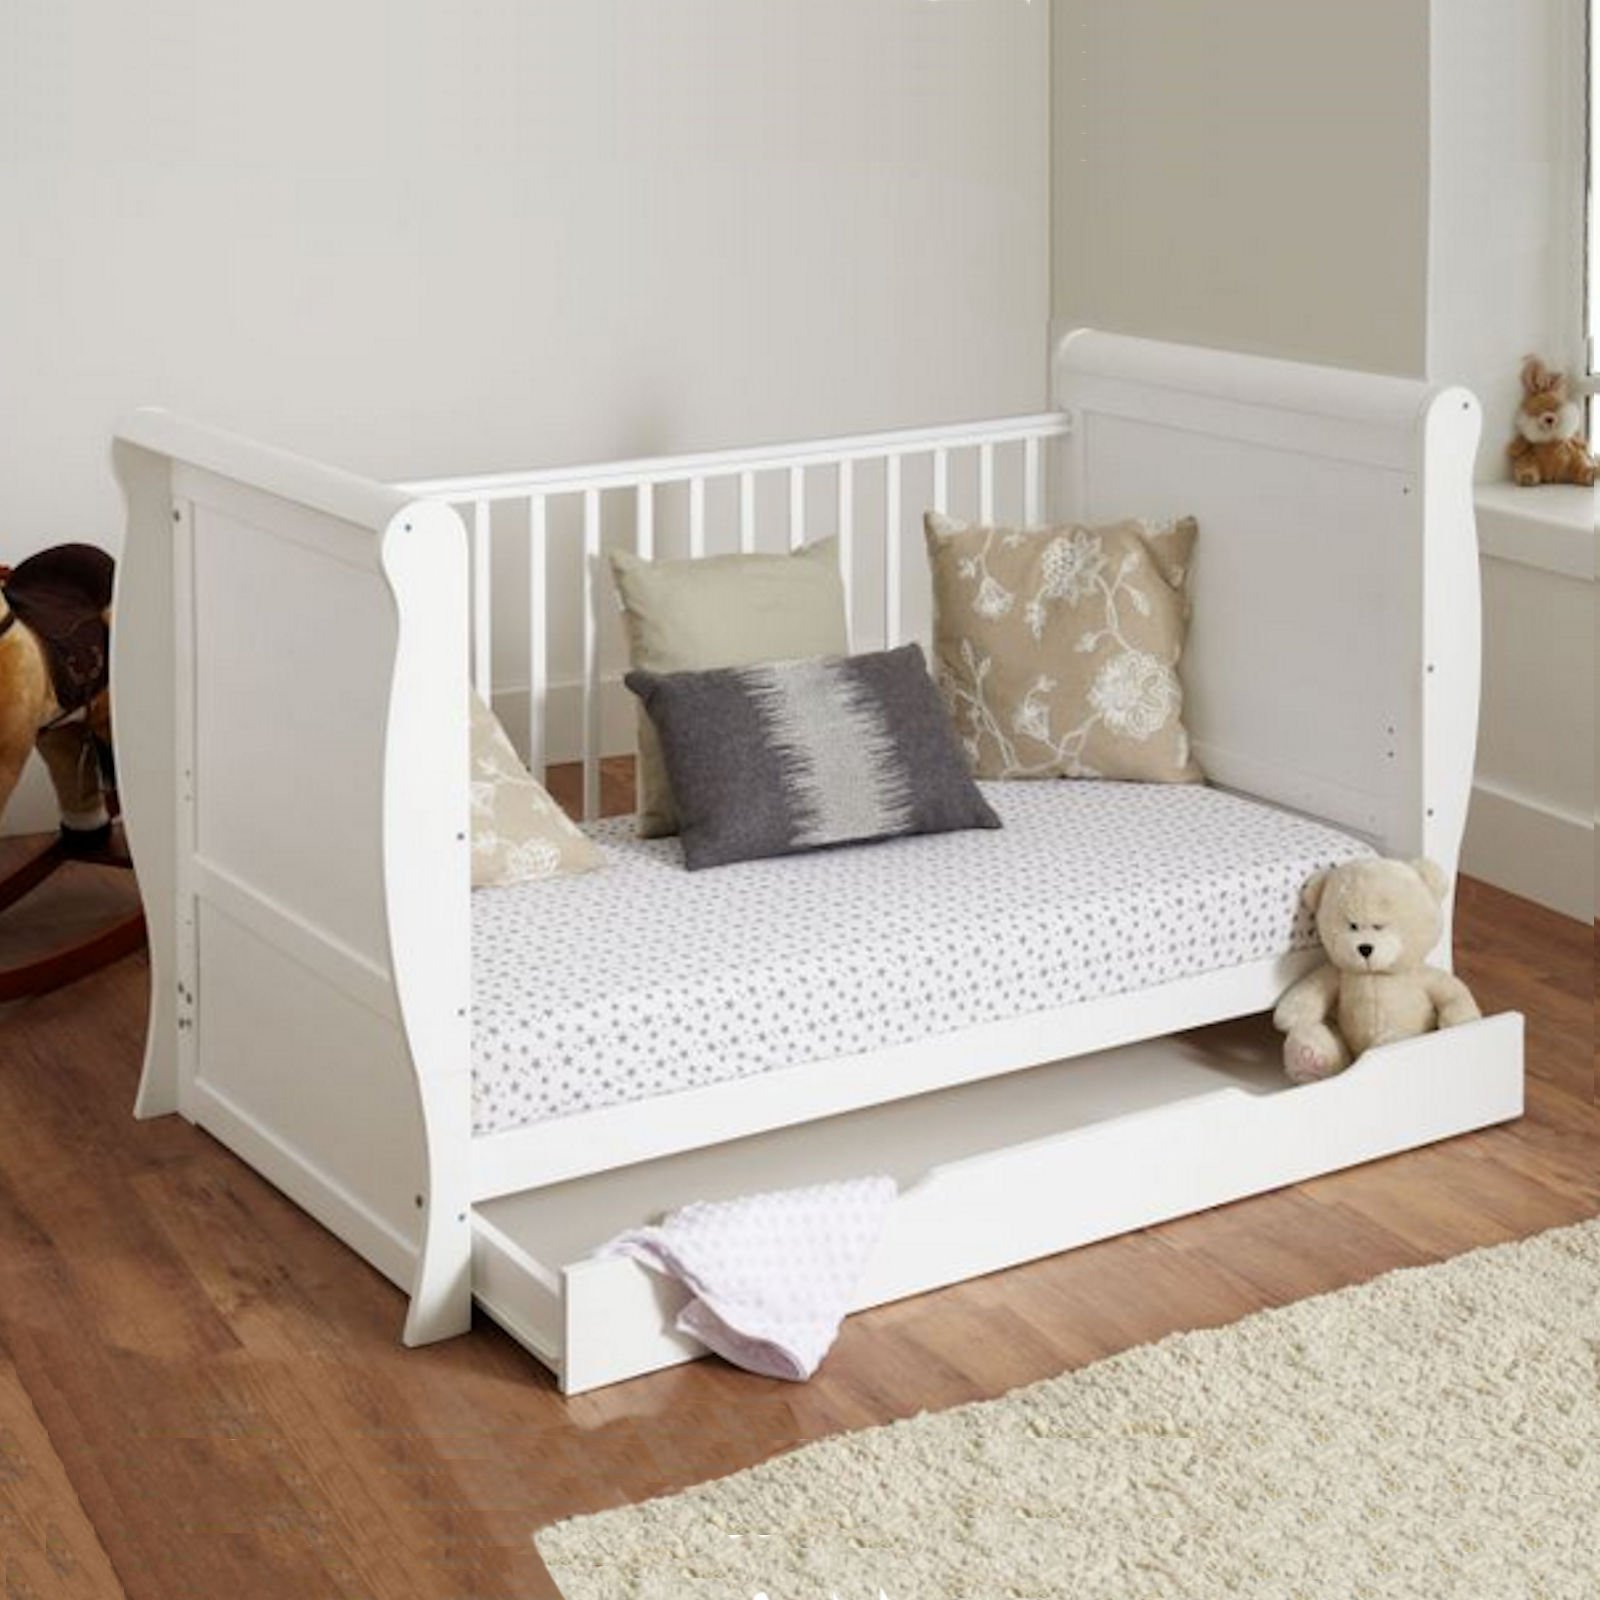 4Baby Sleigh Deluxe Cot Bed & Drawer - White   Buy at ...